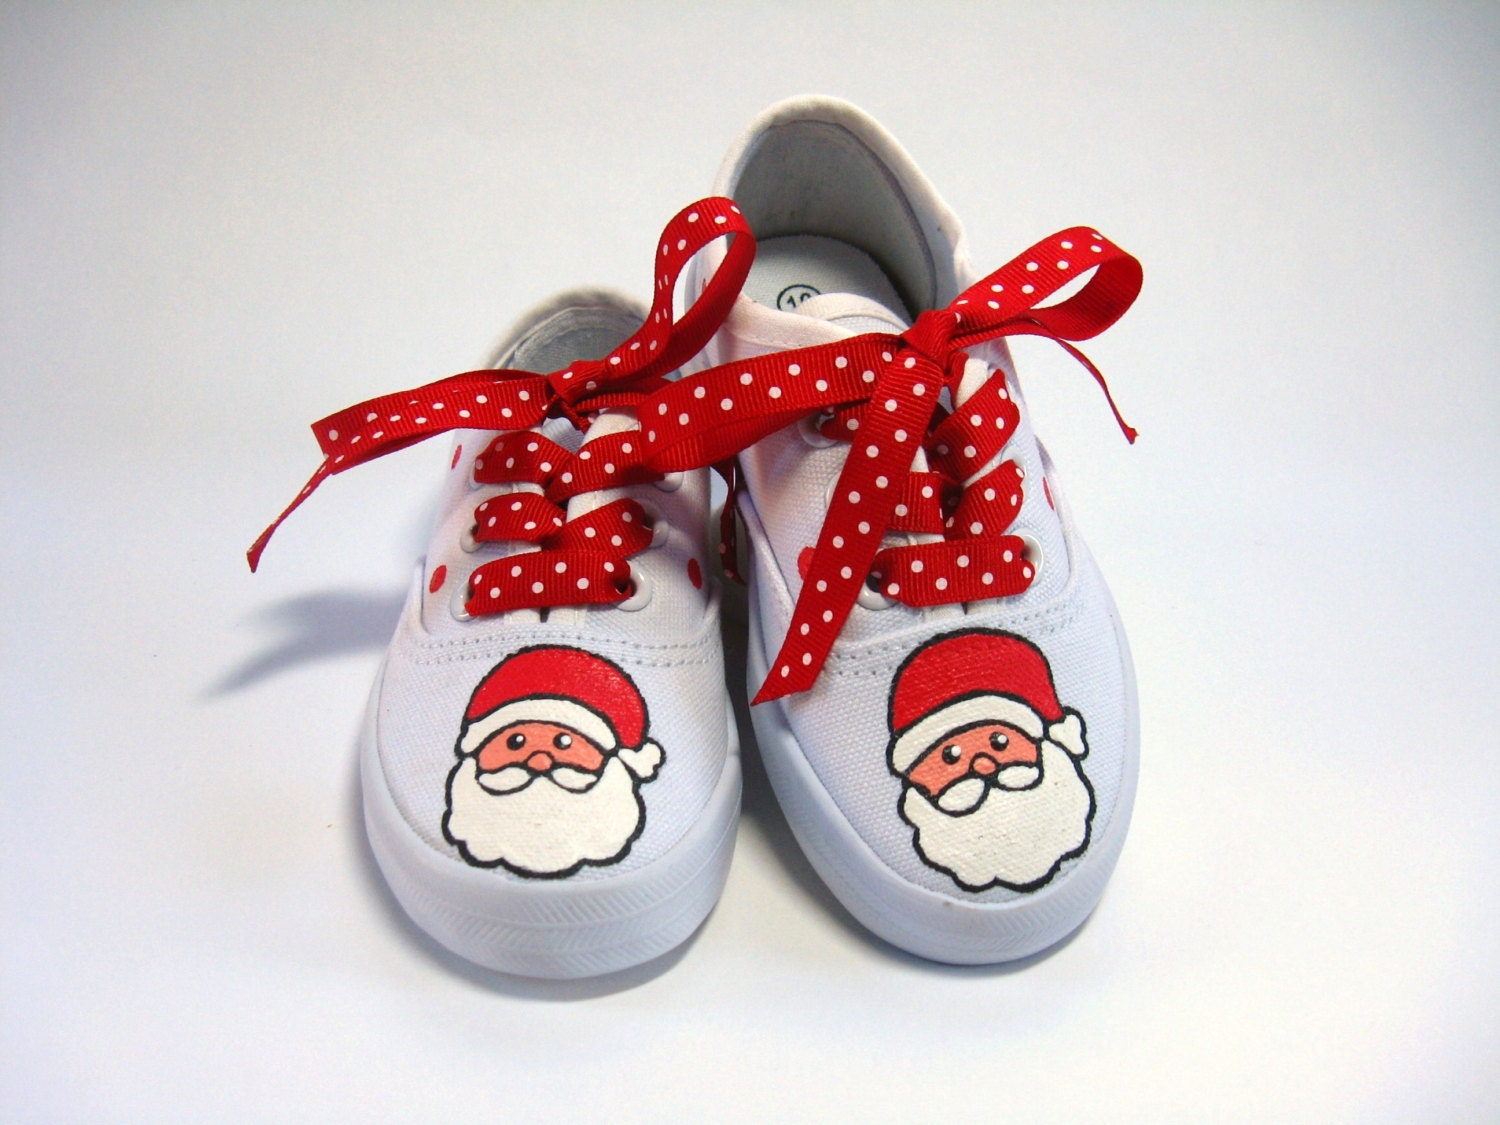 Santa Claus Shoes Christmas Outfit Red and White Hand